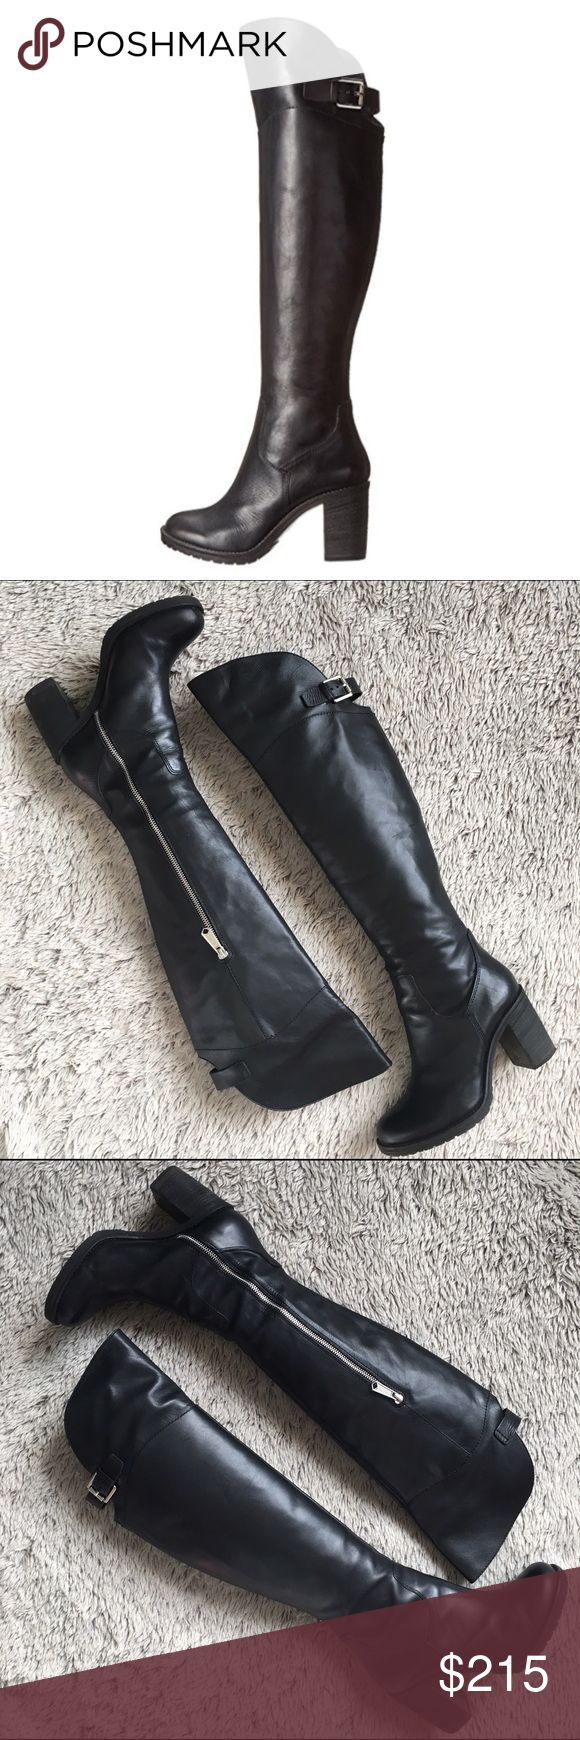 """❤️HP❤️Donald J Pliner Over the Knee Leather Boots Donald J. Pliner 'Taria' true over-the-knee boots in soft black leather. Buckle straps on the back of the upper shaft w partial inner side zips. Lug soles w 3"""" stacked heel. Shaft is approx 21"""" from the arch. Boot opening measures at approx 14"""" around. Very comfy to walk in. Only worn a few times and in excellent condition. Kept in original box/packaging. Only flaw is seen in last pic. A tiny knick on the front right sole, can't even notice…"""